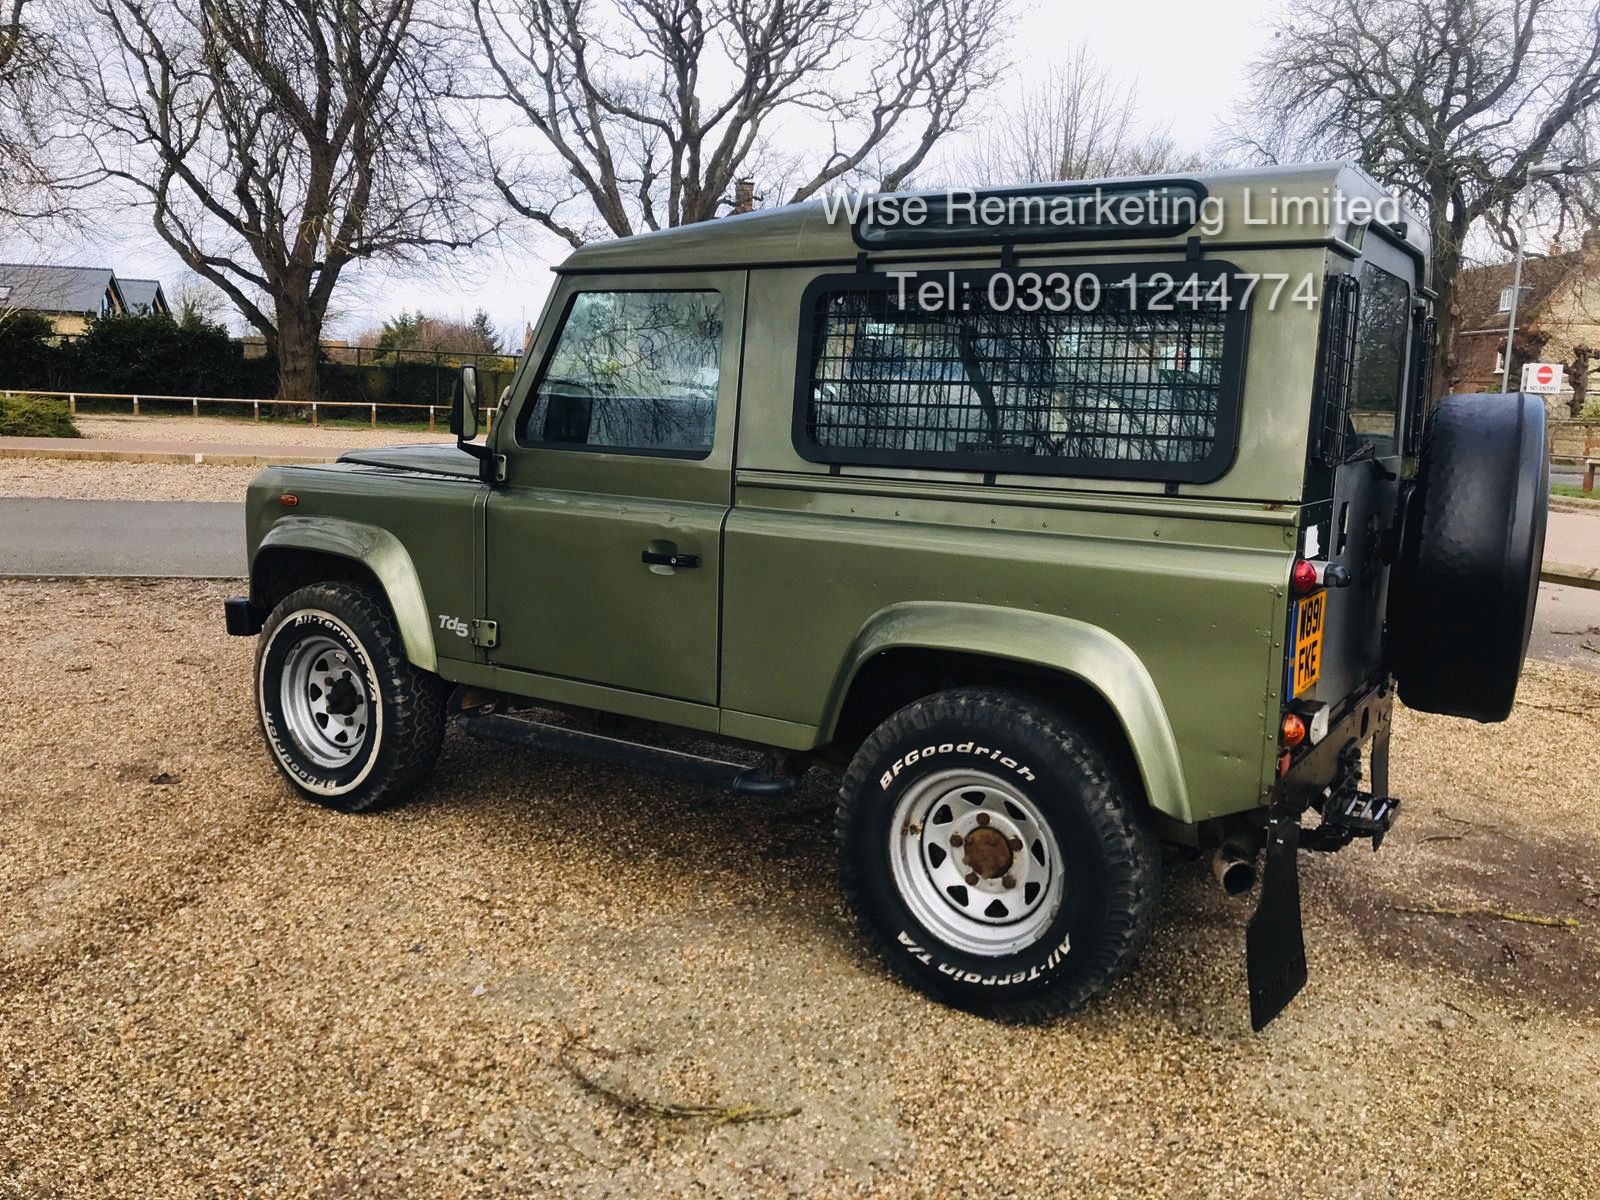 Land Rover Defender 90 County 2.5 TD5 - 2000 Year W Reg - 7 Seater - RARE - SAVE 20% NO VAT - Image 5 of 12